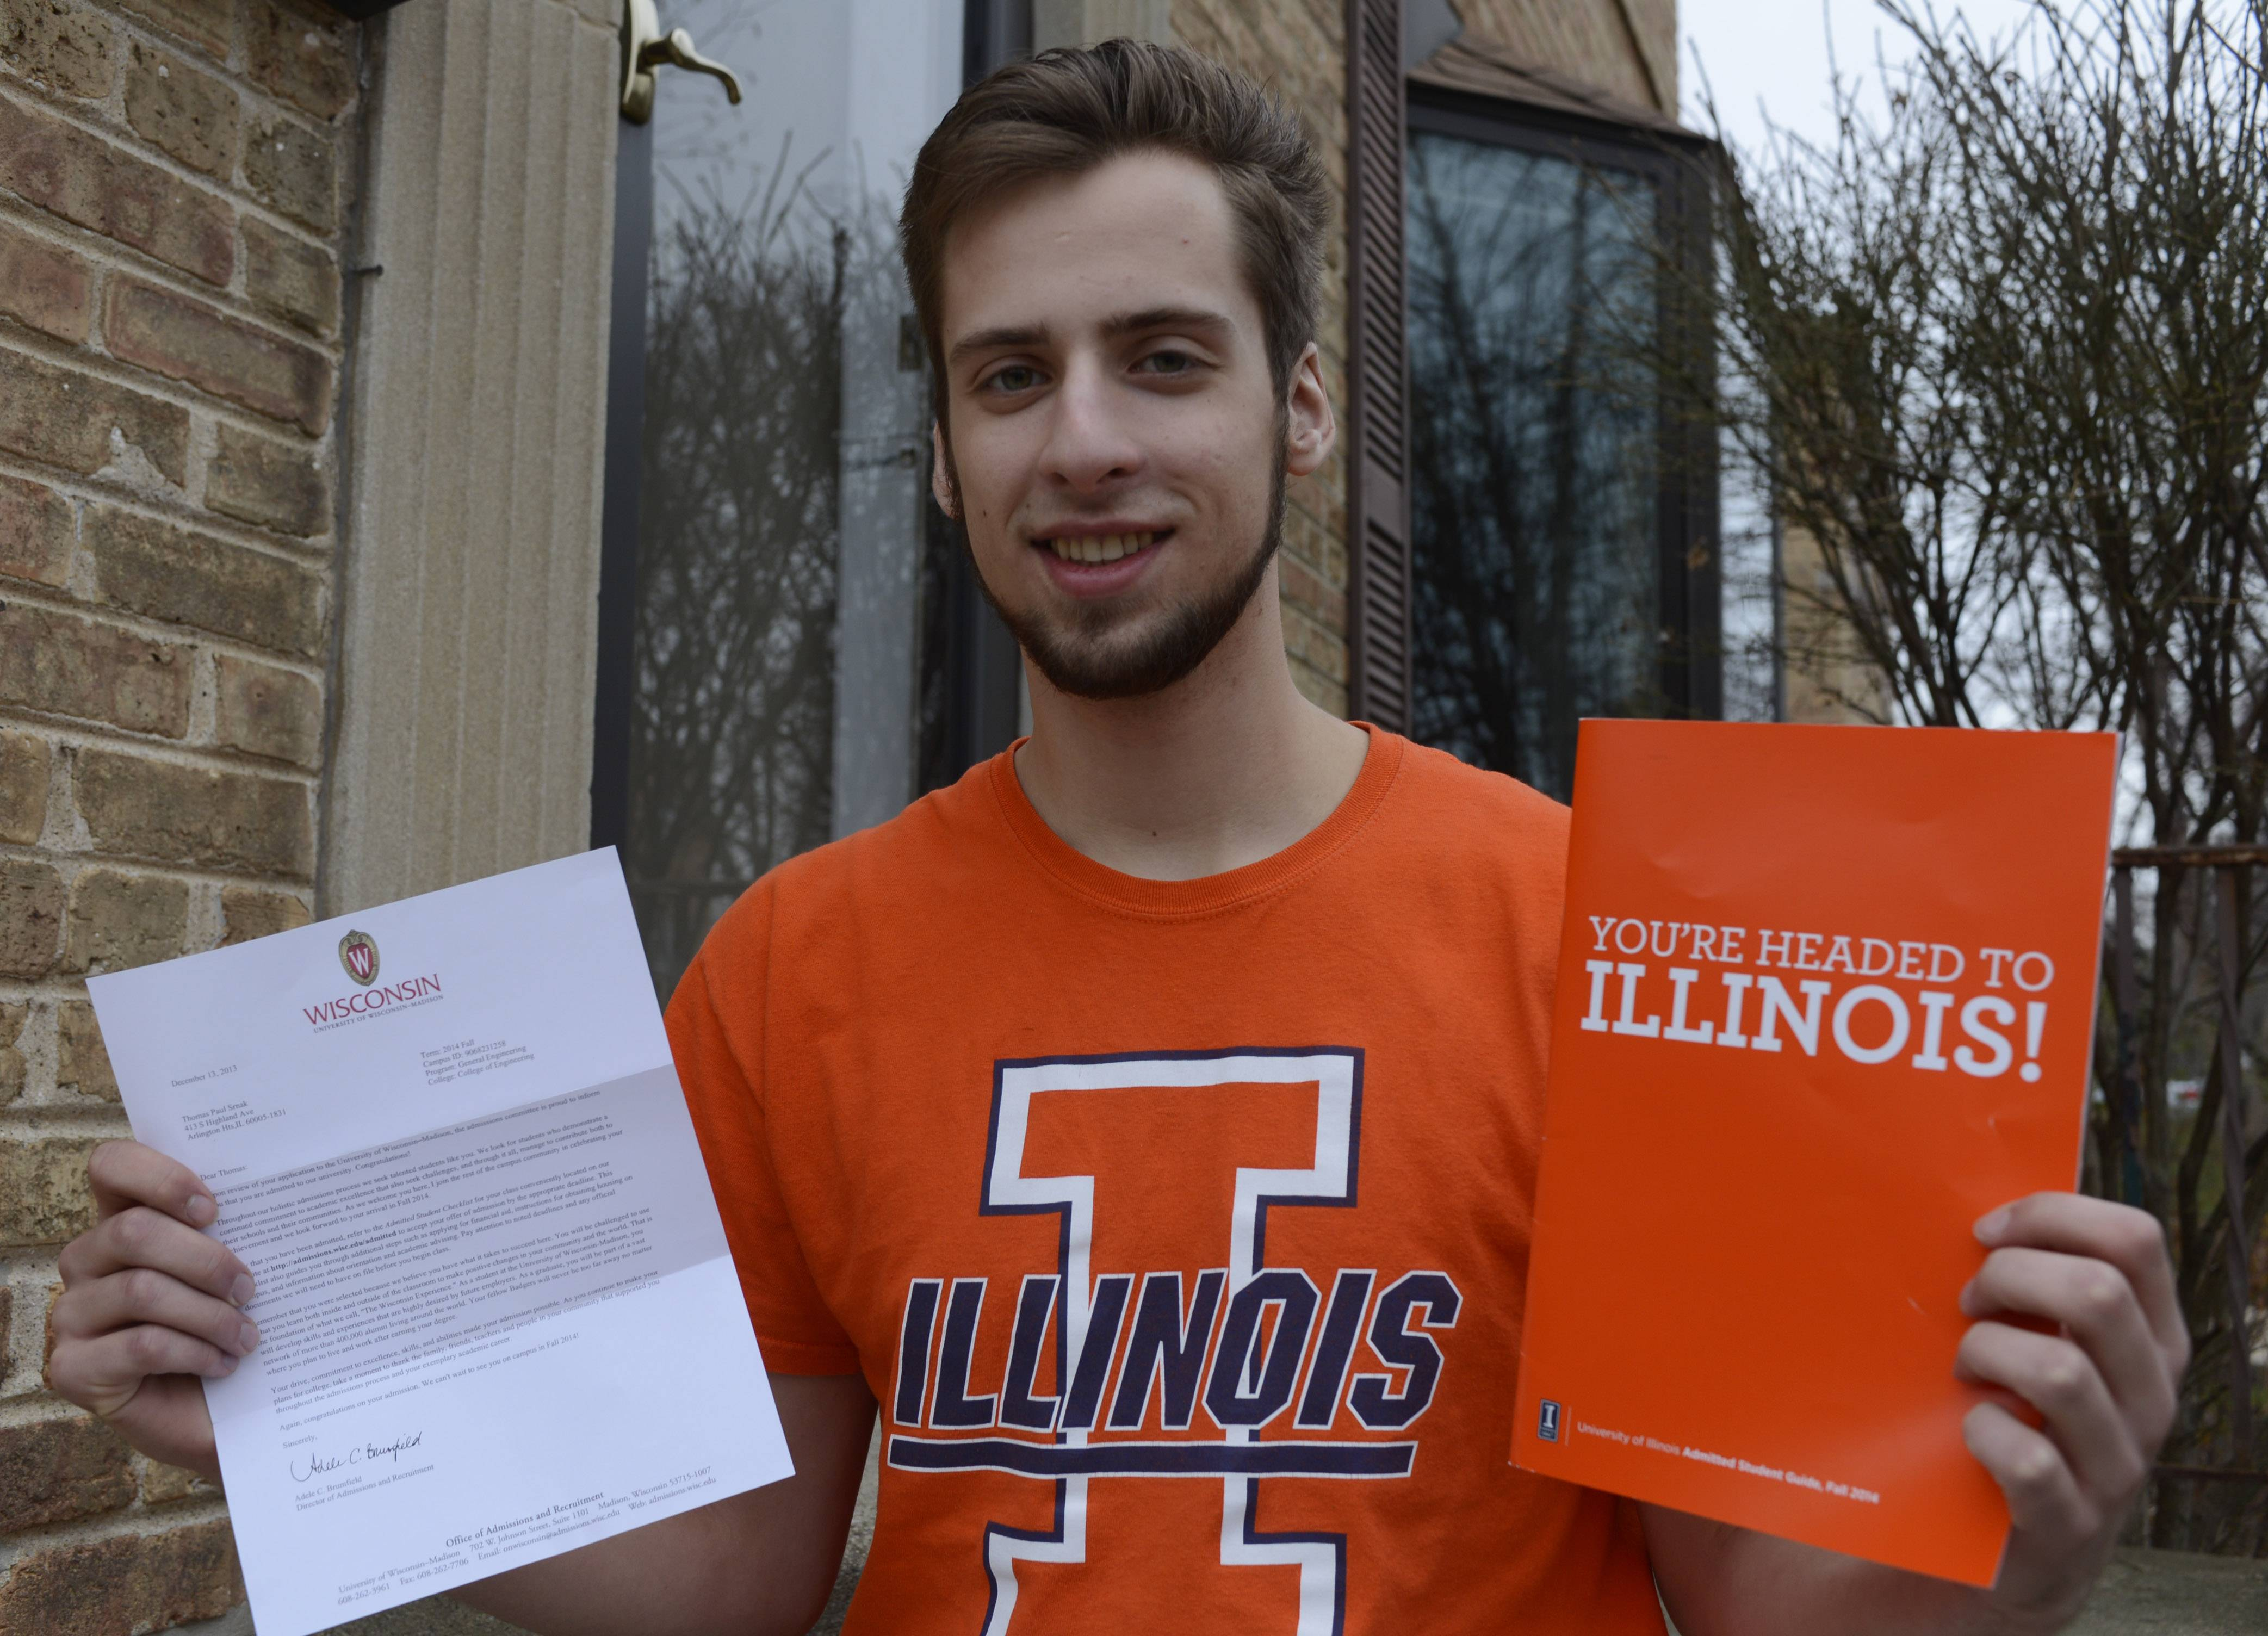 The University of Illinois' better financial aid offer led Tom Srnak of Arlington Heights to choose it over the University of Wisconsin-Madison, whose letter is at left and where he'd always expected to attend.